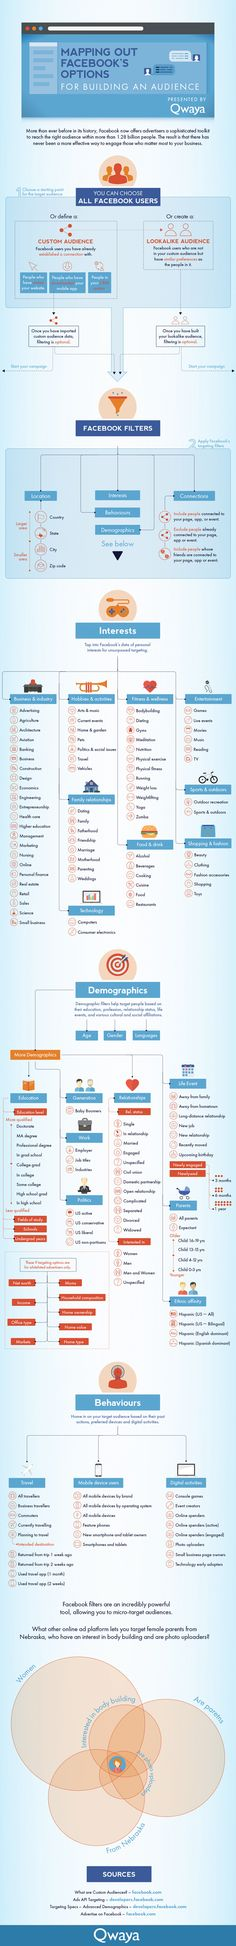 #audience #mapping #facebook #infographic